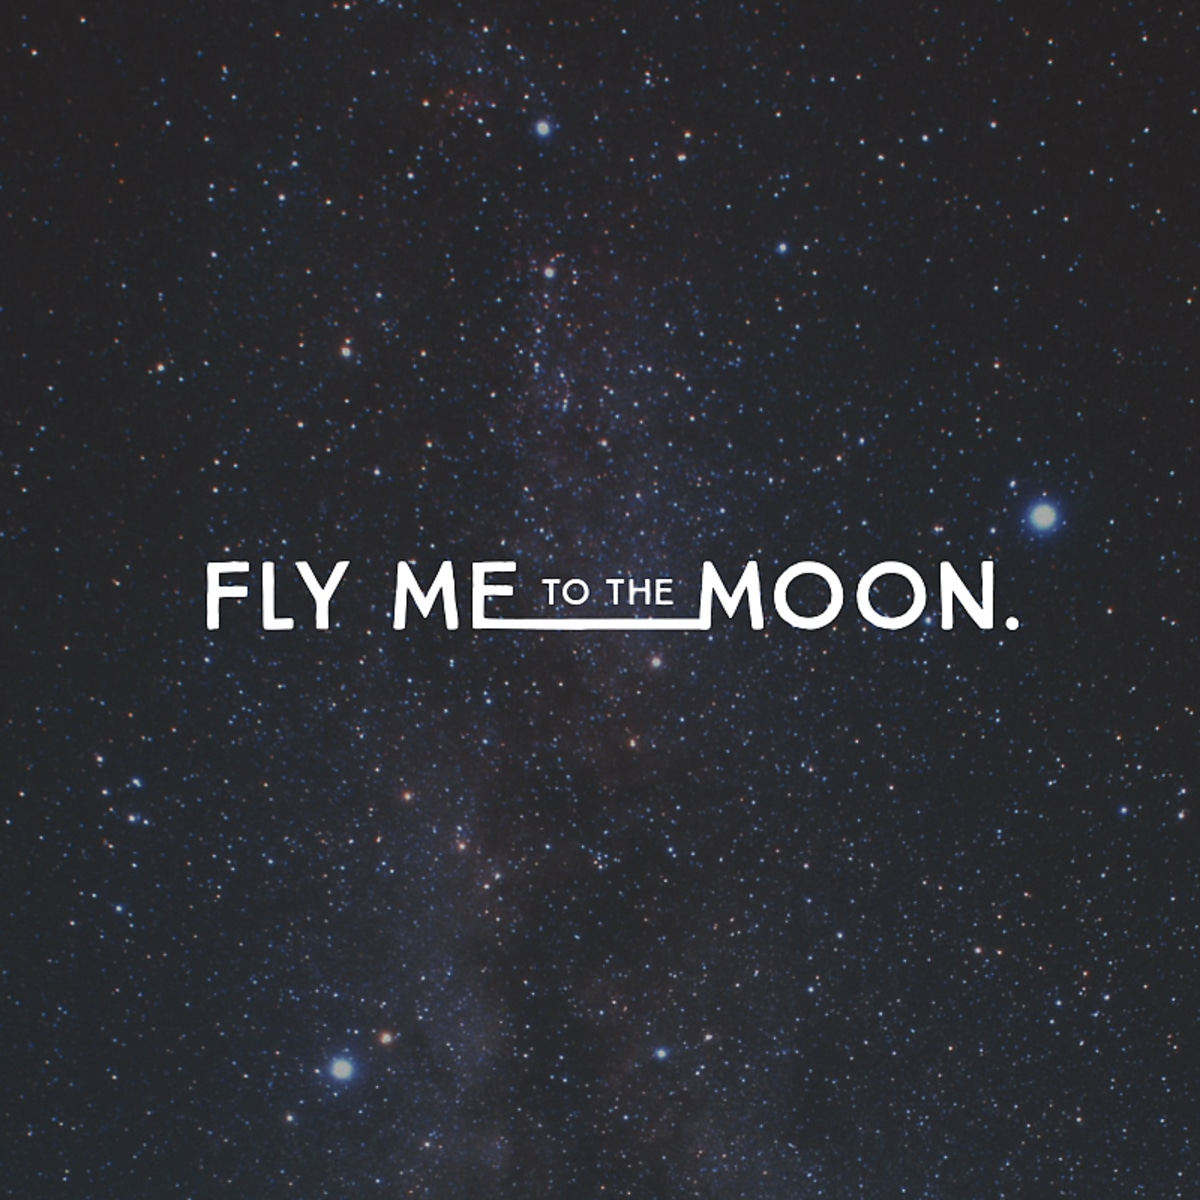 Me the fly moon to